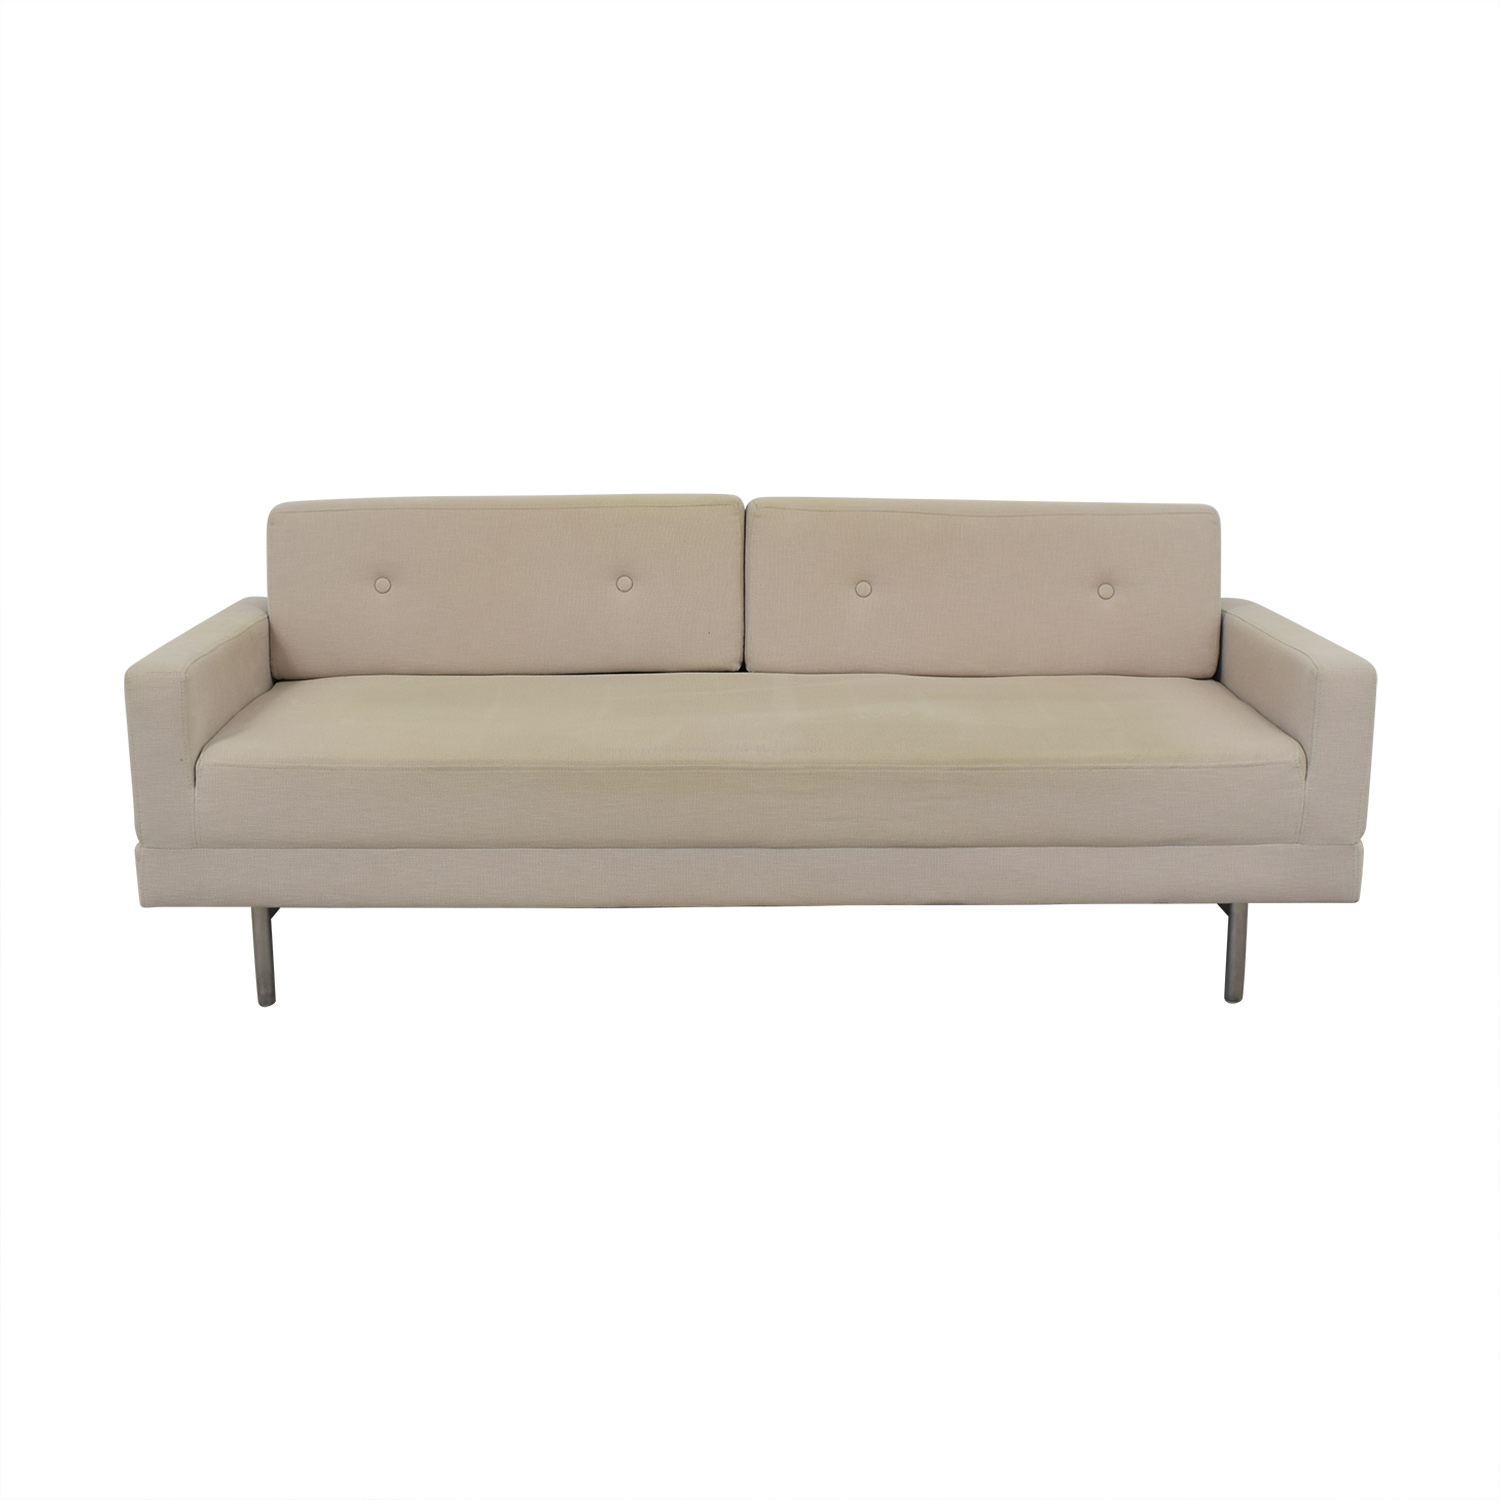 "Blu Dot One Night Stand 80"" Sleeper Sofa Blu Dot"